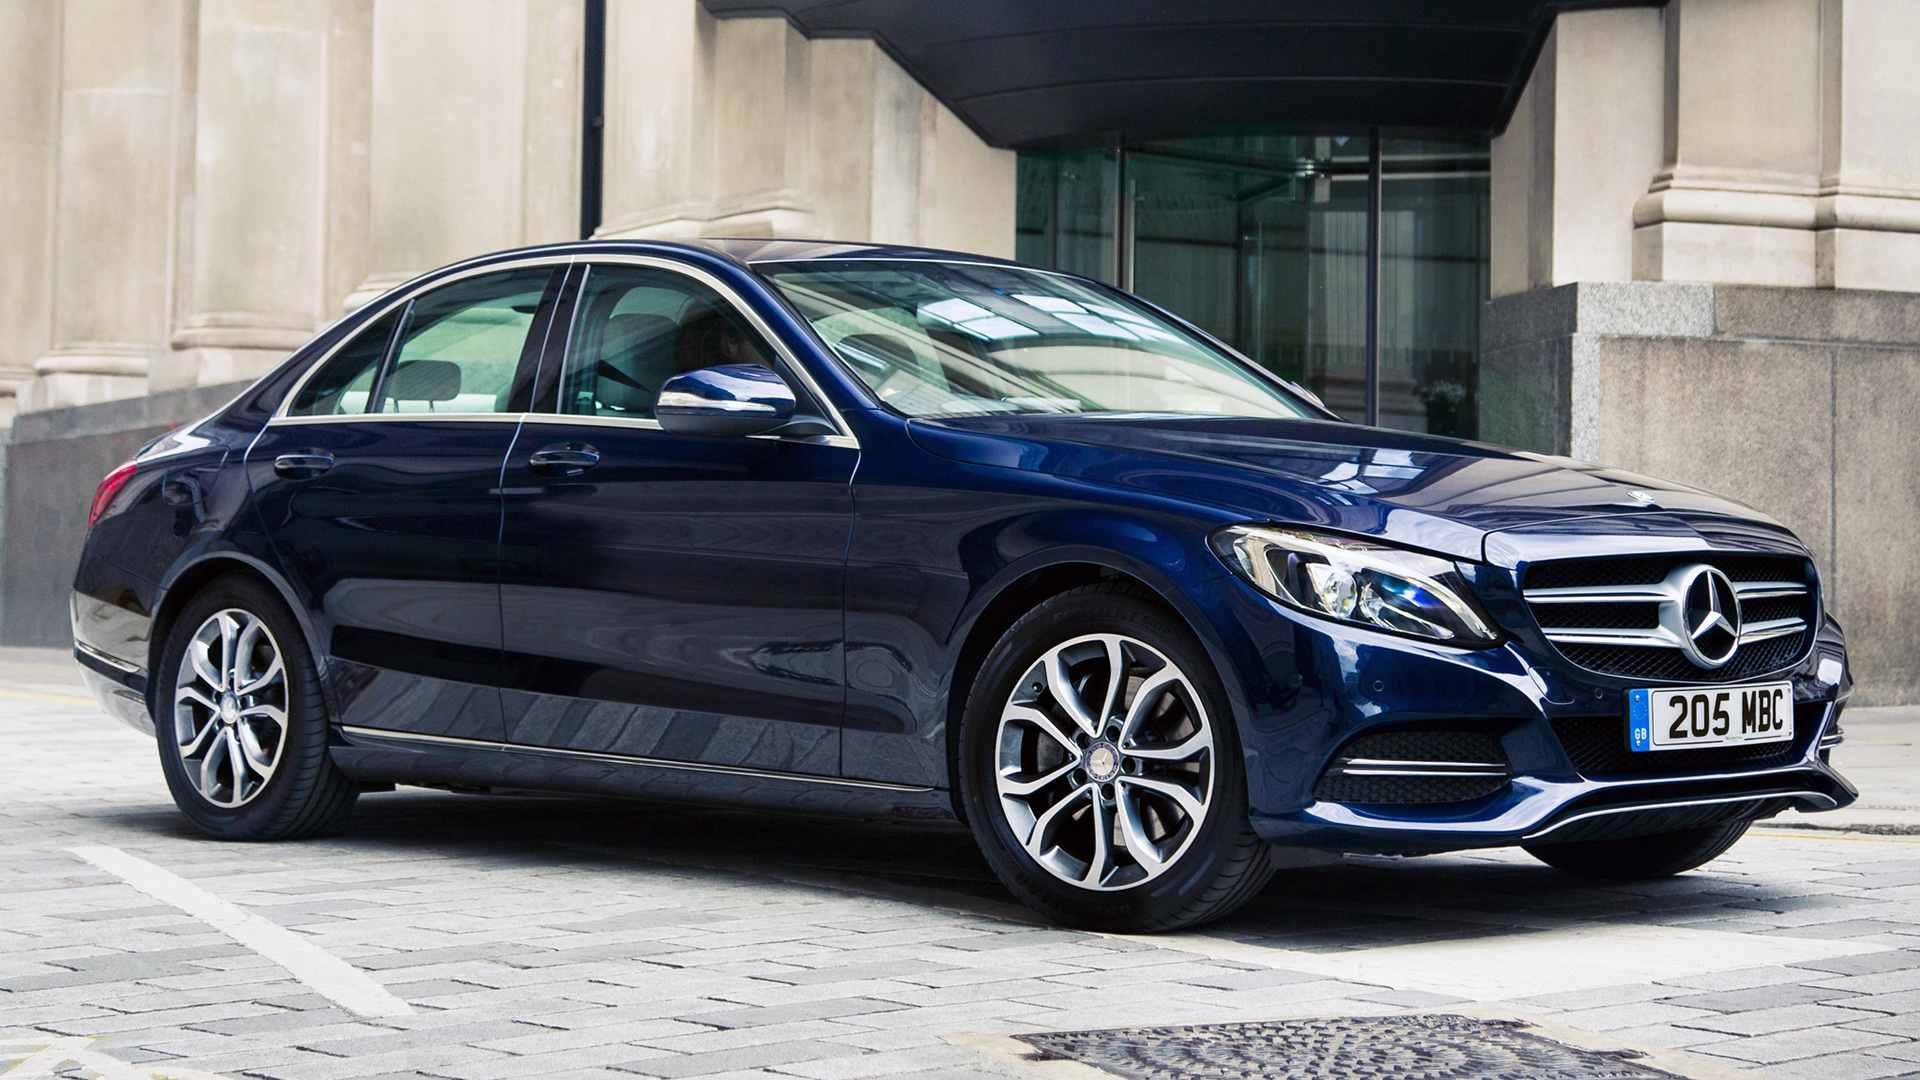 mercedes-benz c-class (2014) uk wallpapers and hd images - car pixel